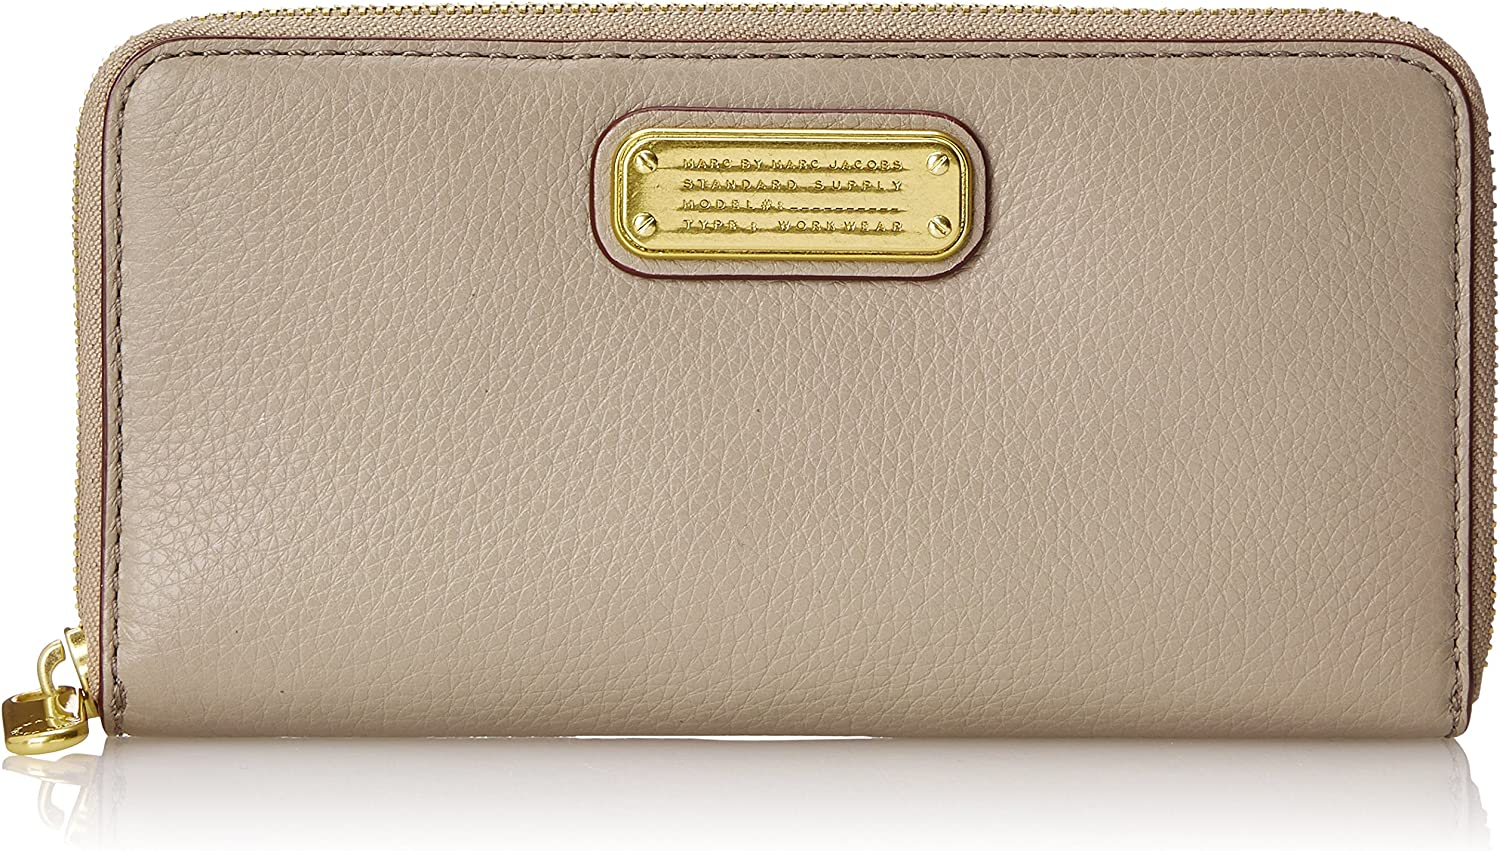 Marc by Marc Jacobs New Q Vertical Zippy Wallet